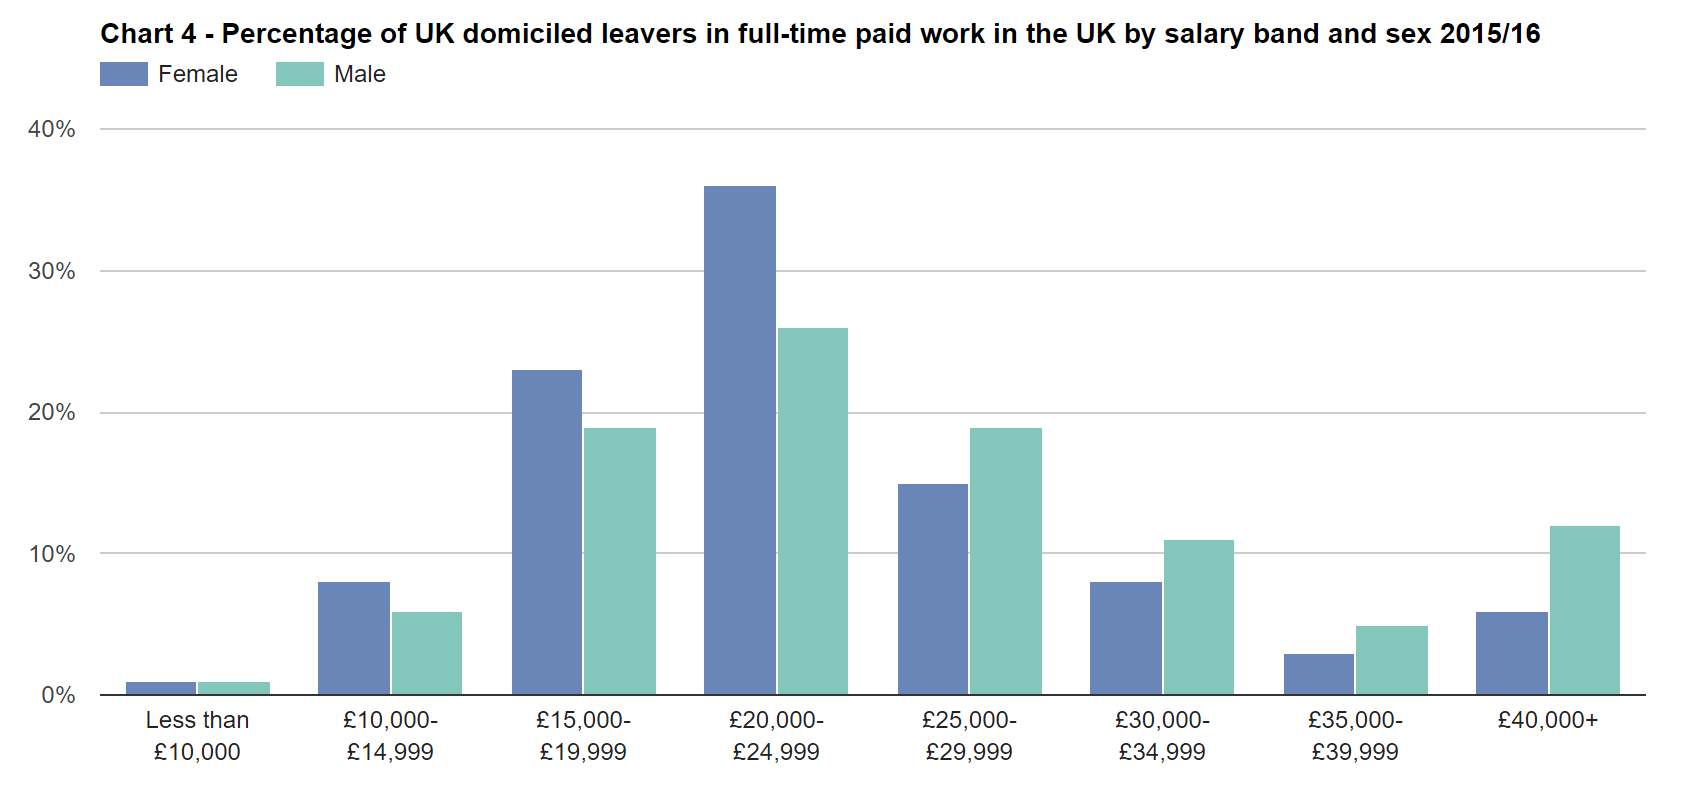 SFR245: Chart 4 - Percentage of UK domiciled leavers in full-time paid work in the UK by salary band and sex 2015/16